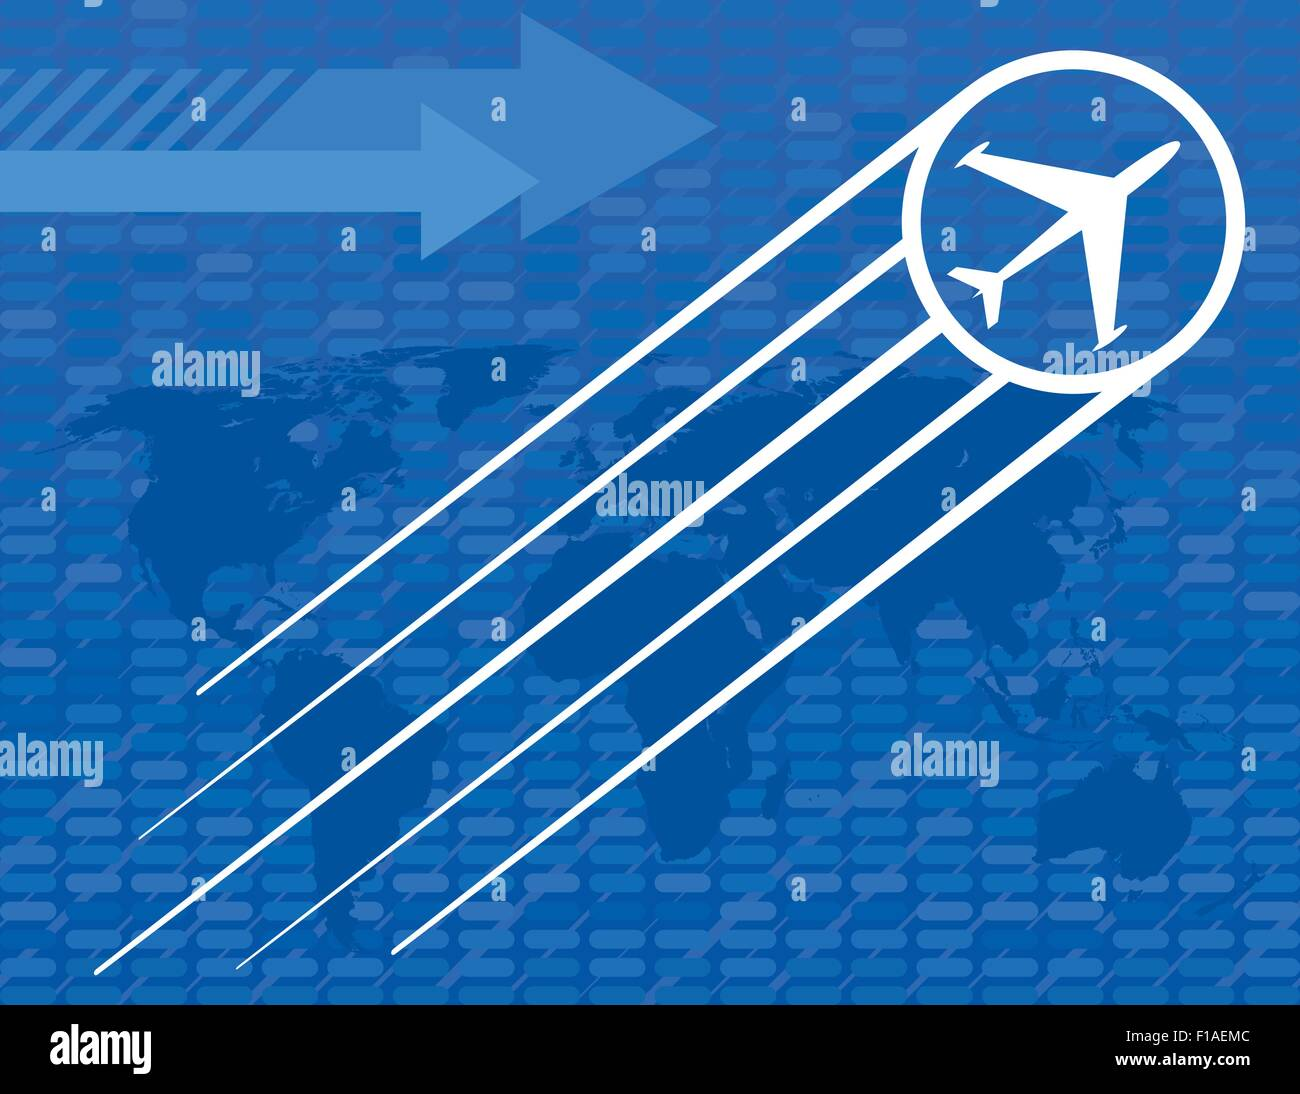 Blue Airplane Travel Background with arrows and a world map - Stock Image